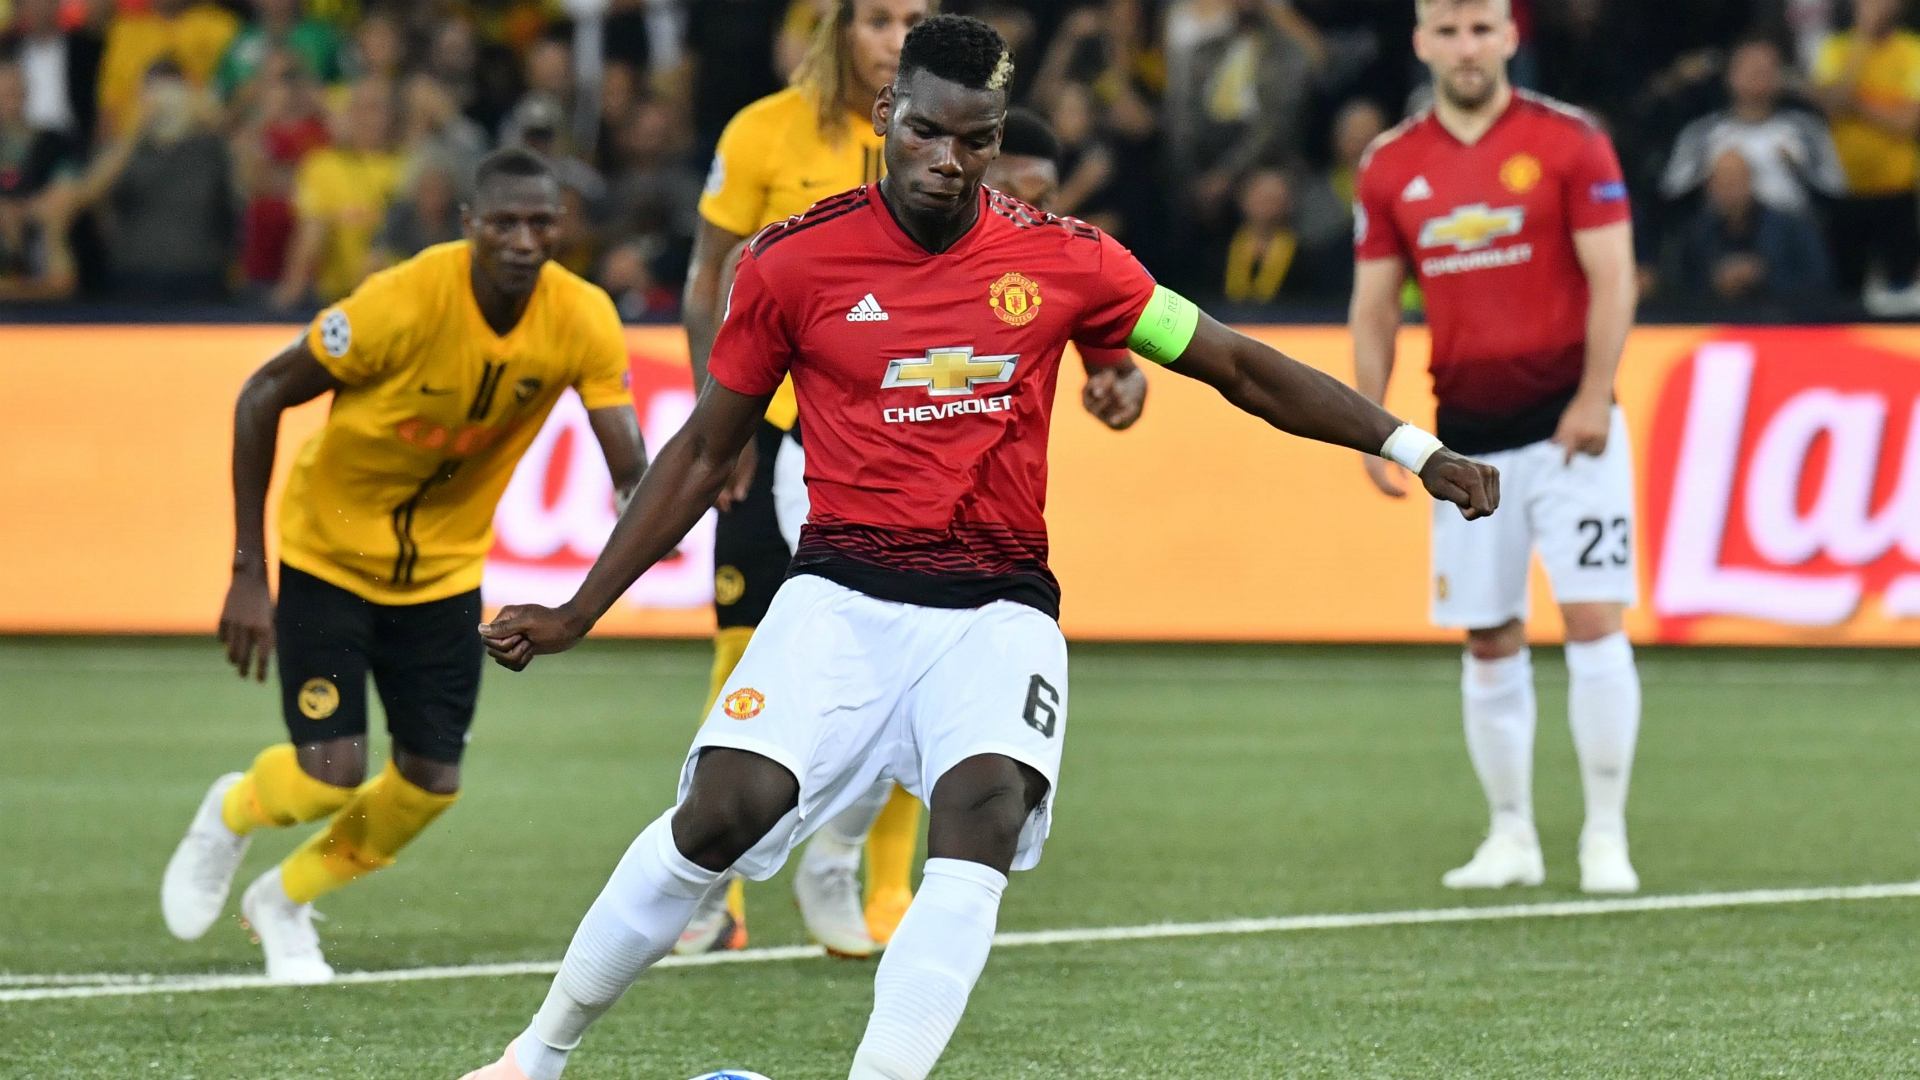 Paul Pogba Young Boys Manchester United UEFA Champions League 09192018